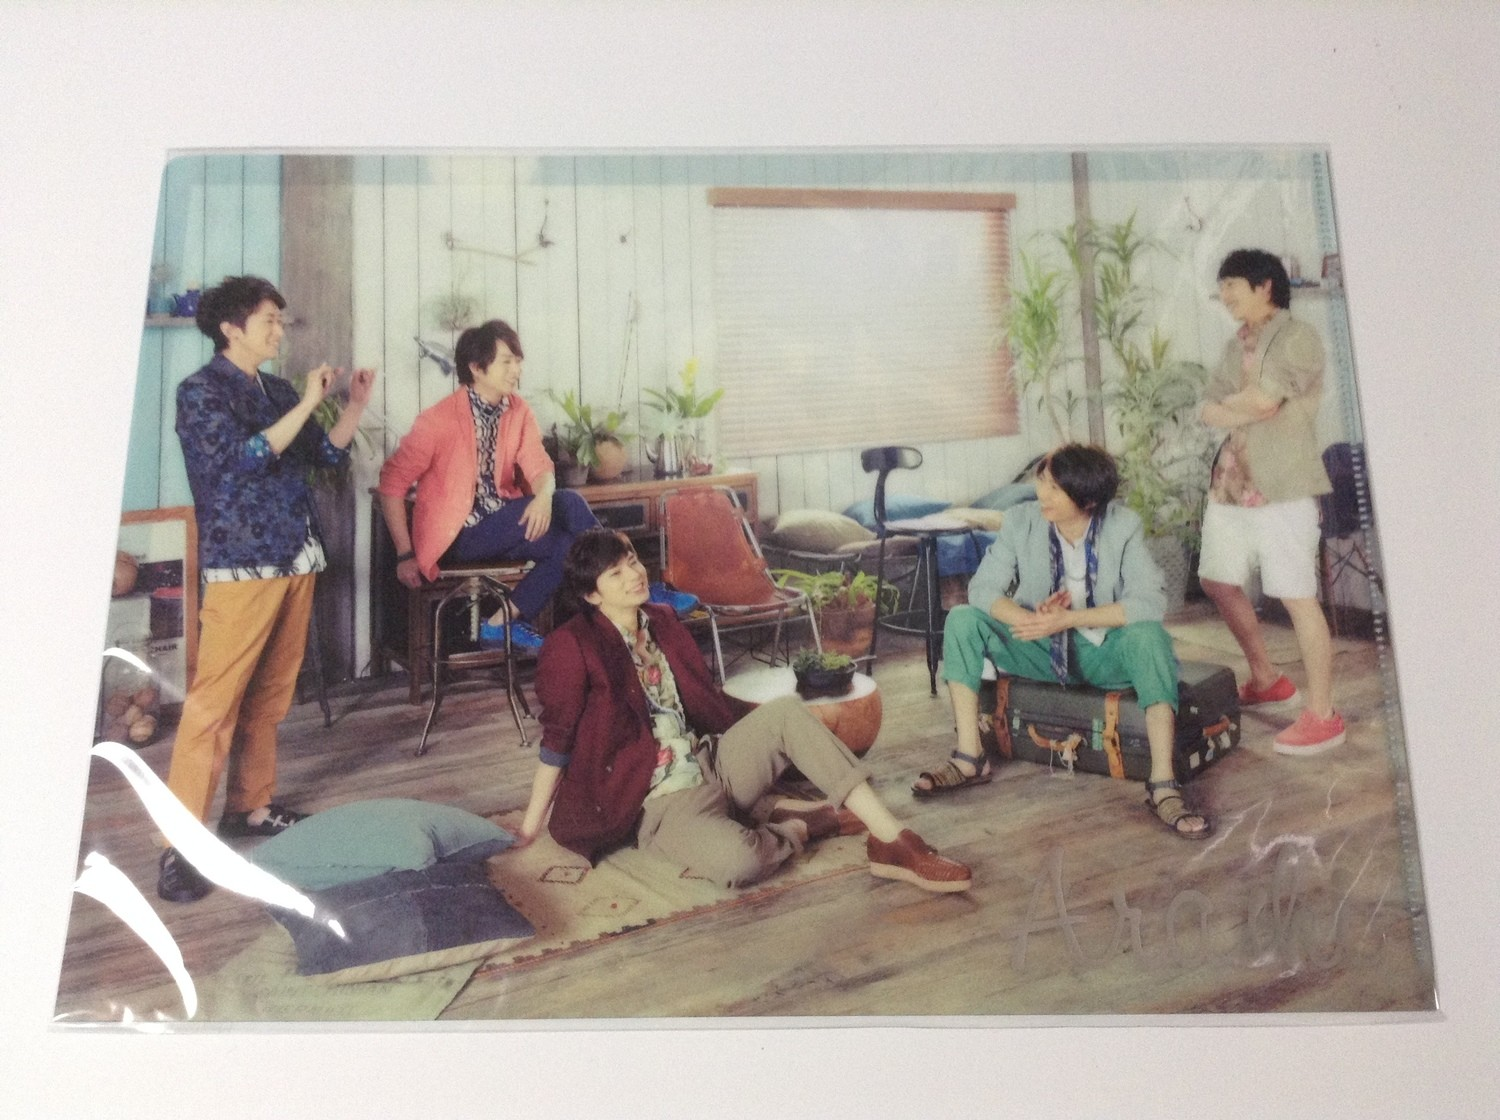 Arashi Blast in Hawaii Group Clearfile